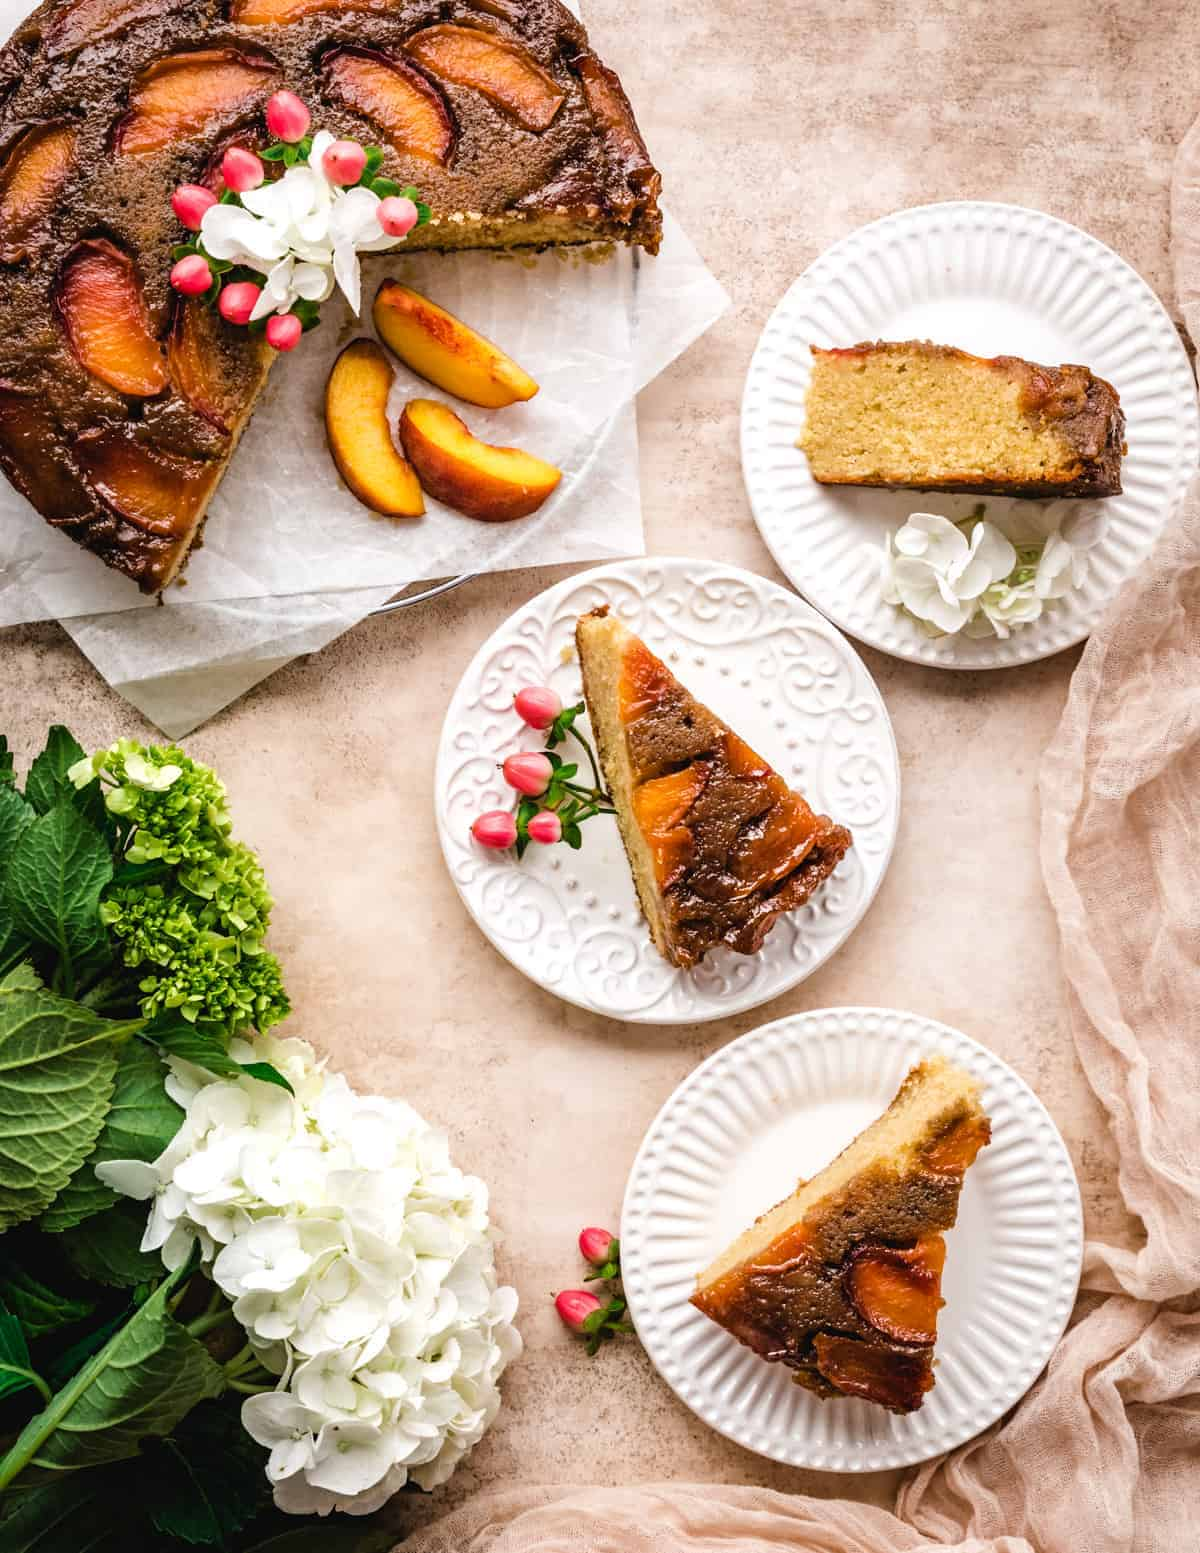 You can use fresh or frozen peaches to make this delicious caramel peach upside down cake.